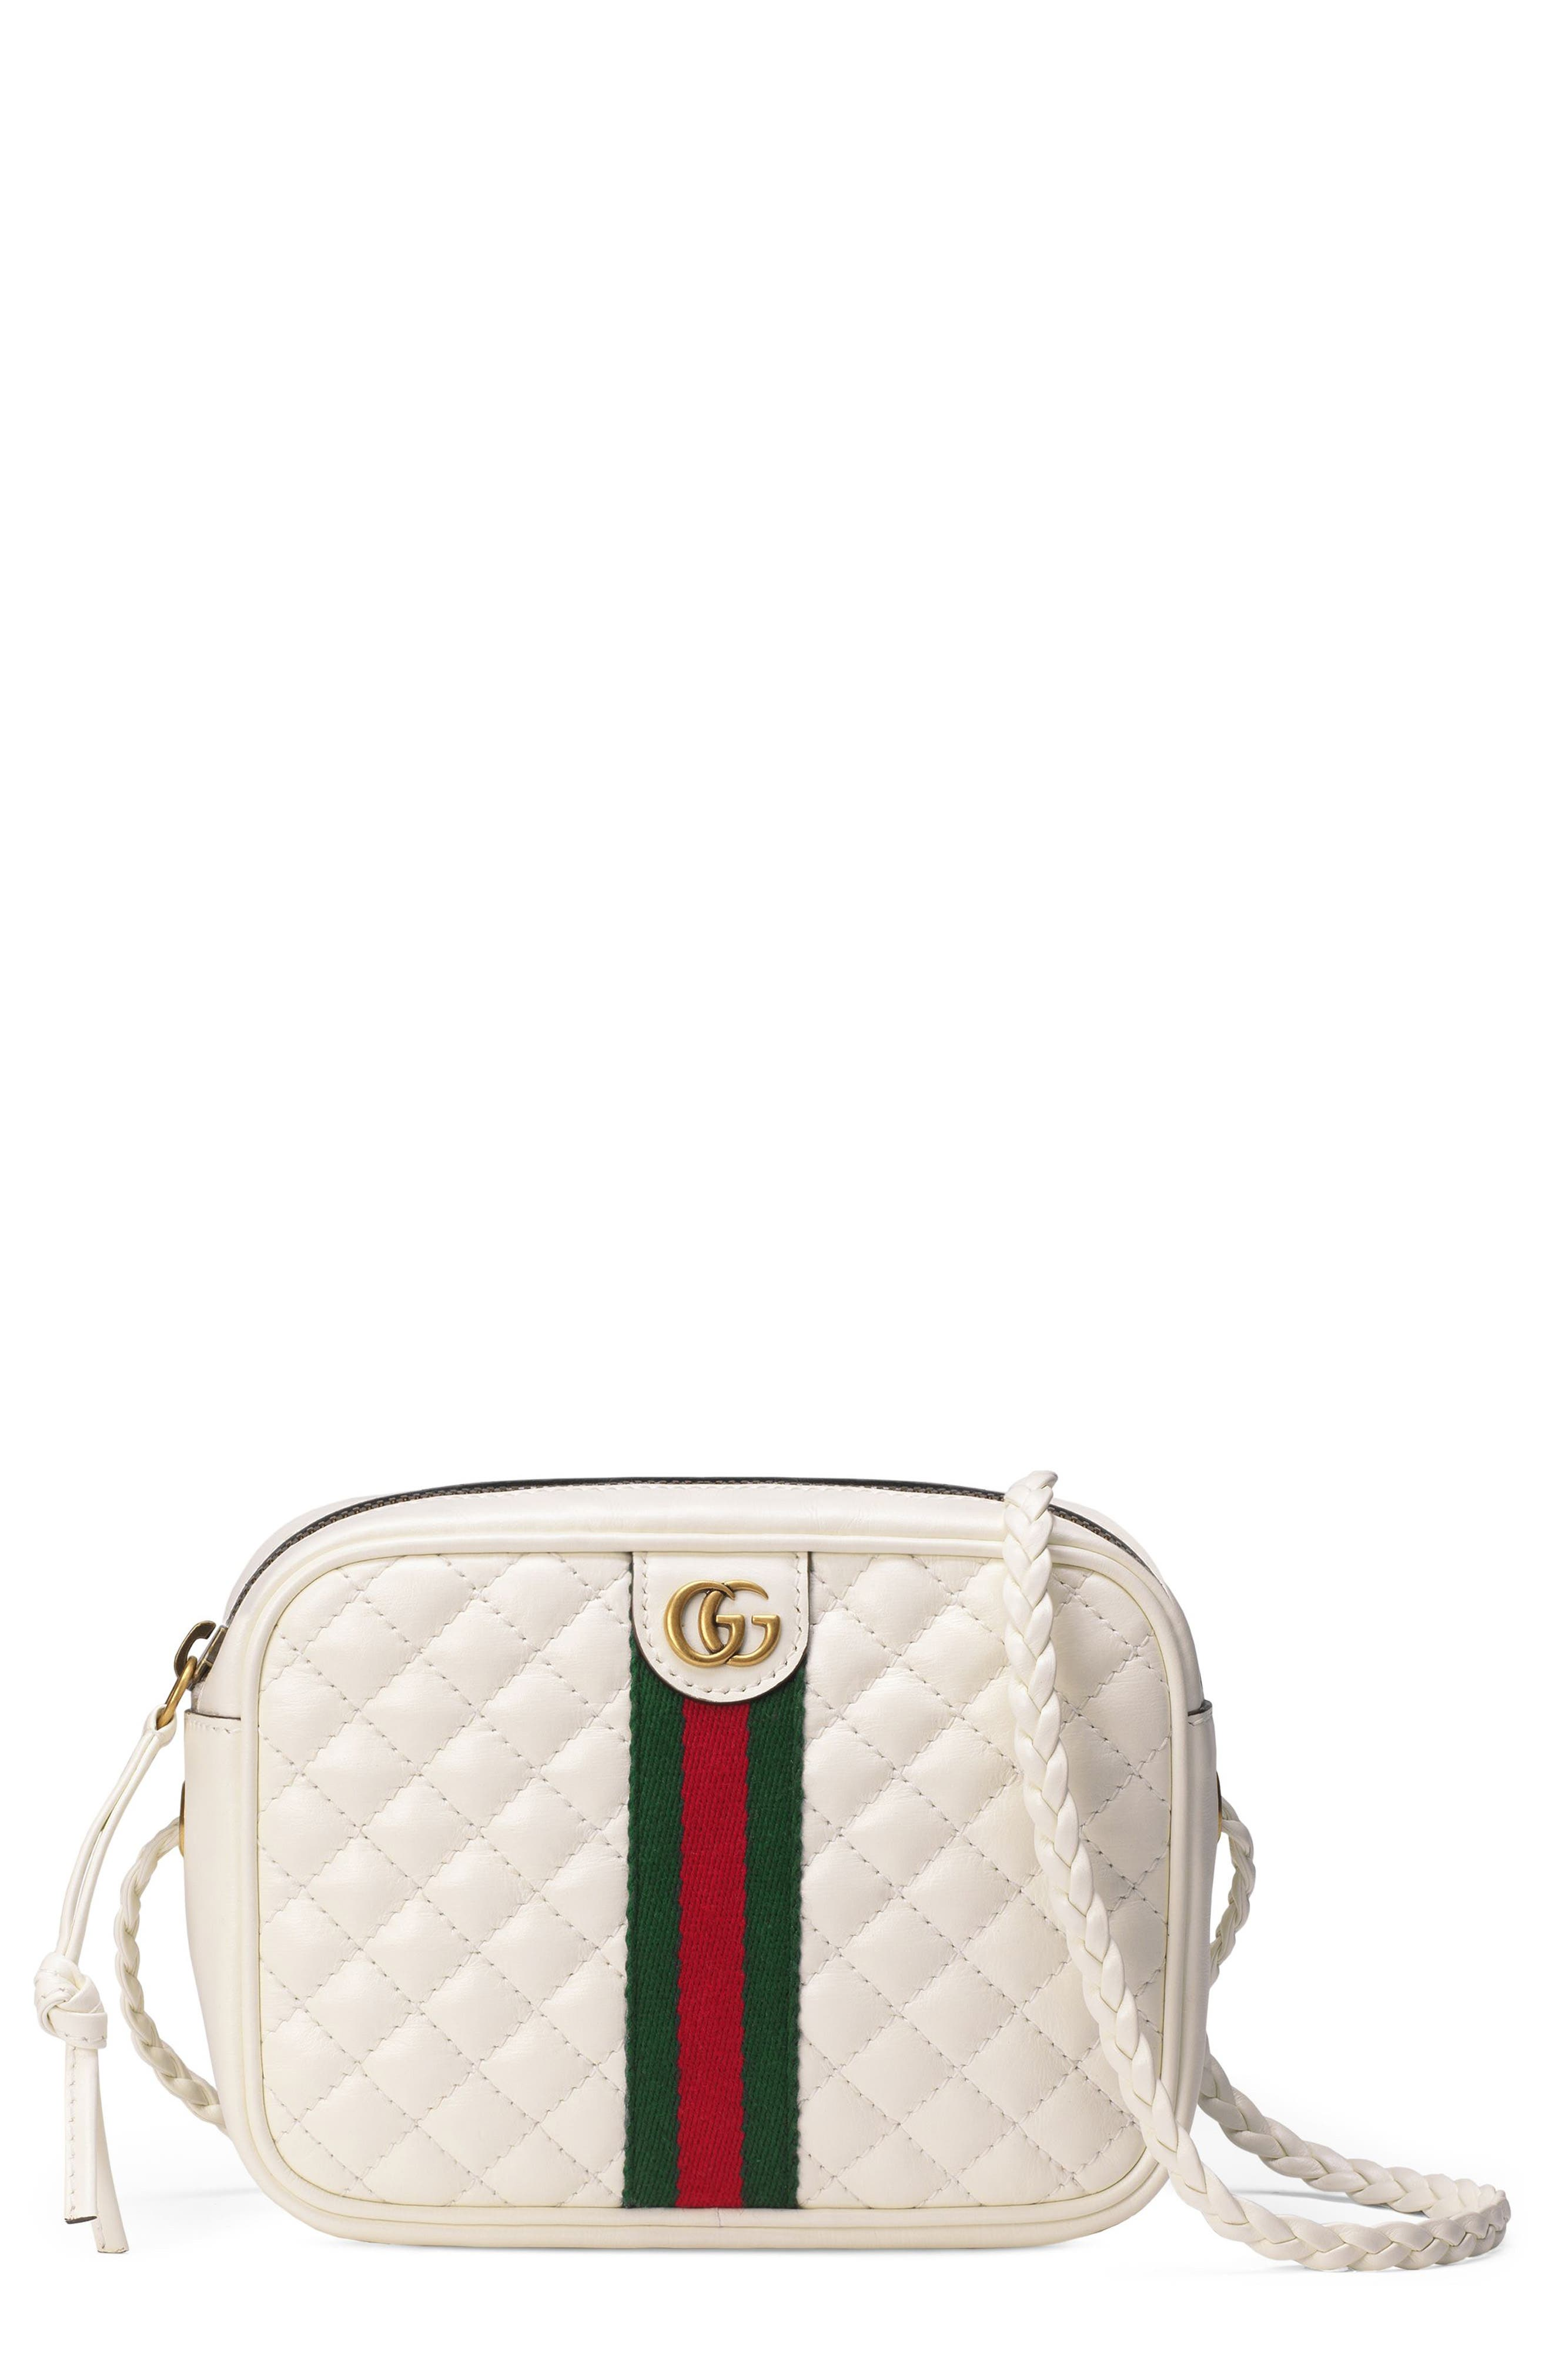 Gucci Small Quilted Leather Camera Bag - Ivory